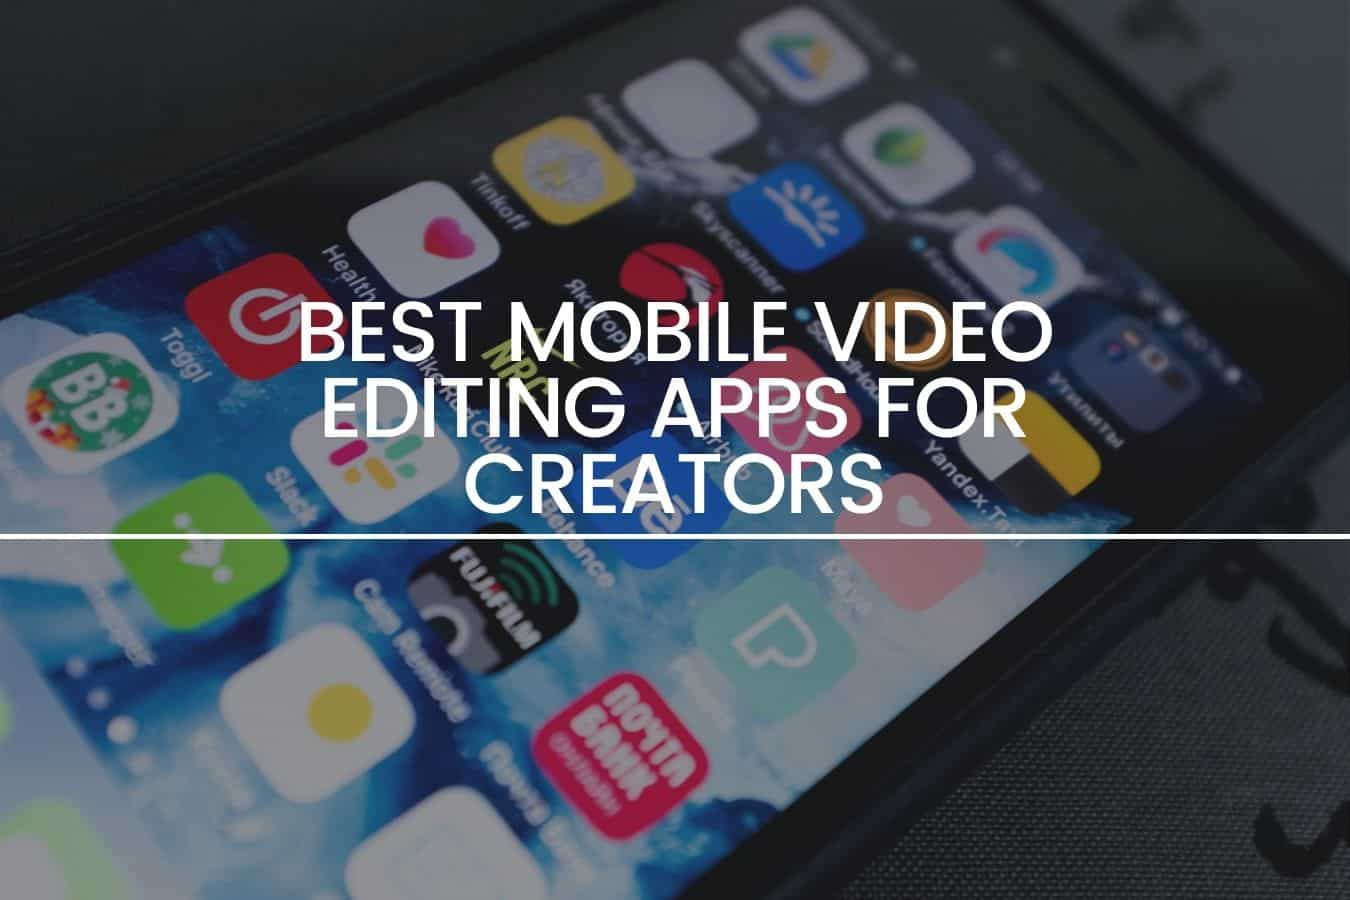 Best Mobile Video Editing Apps for Creators